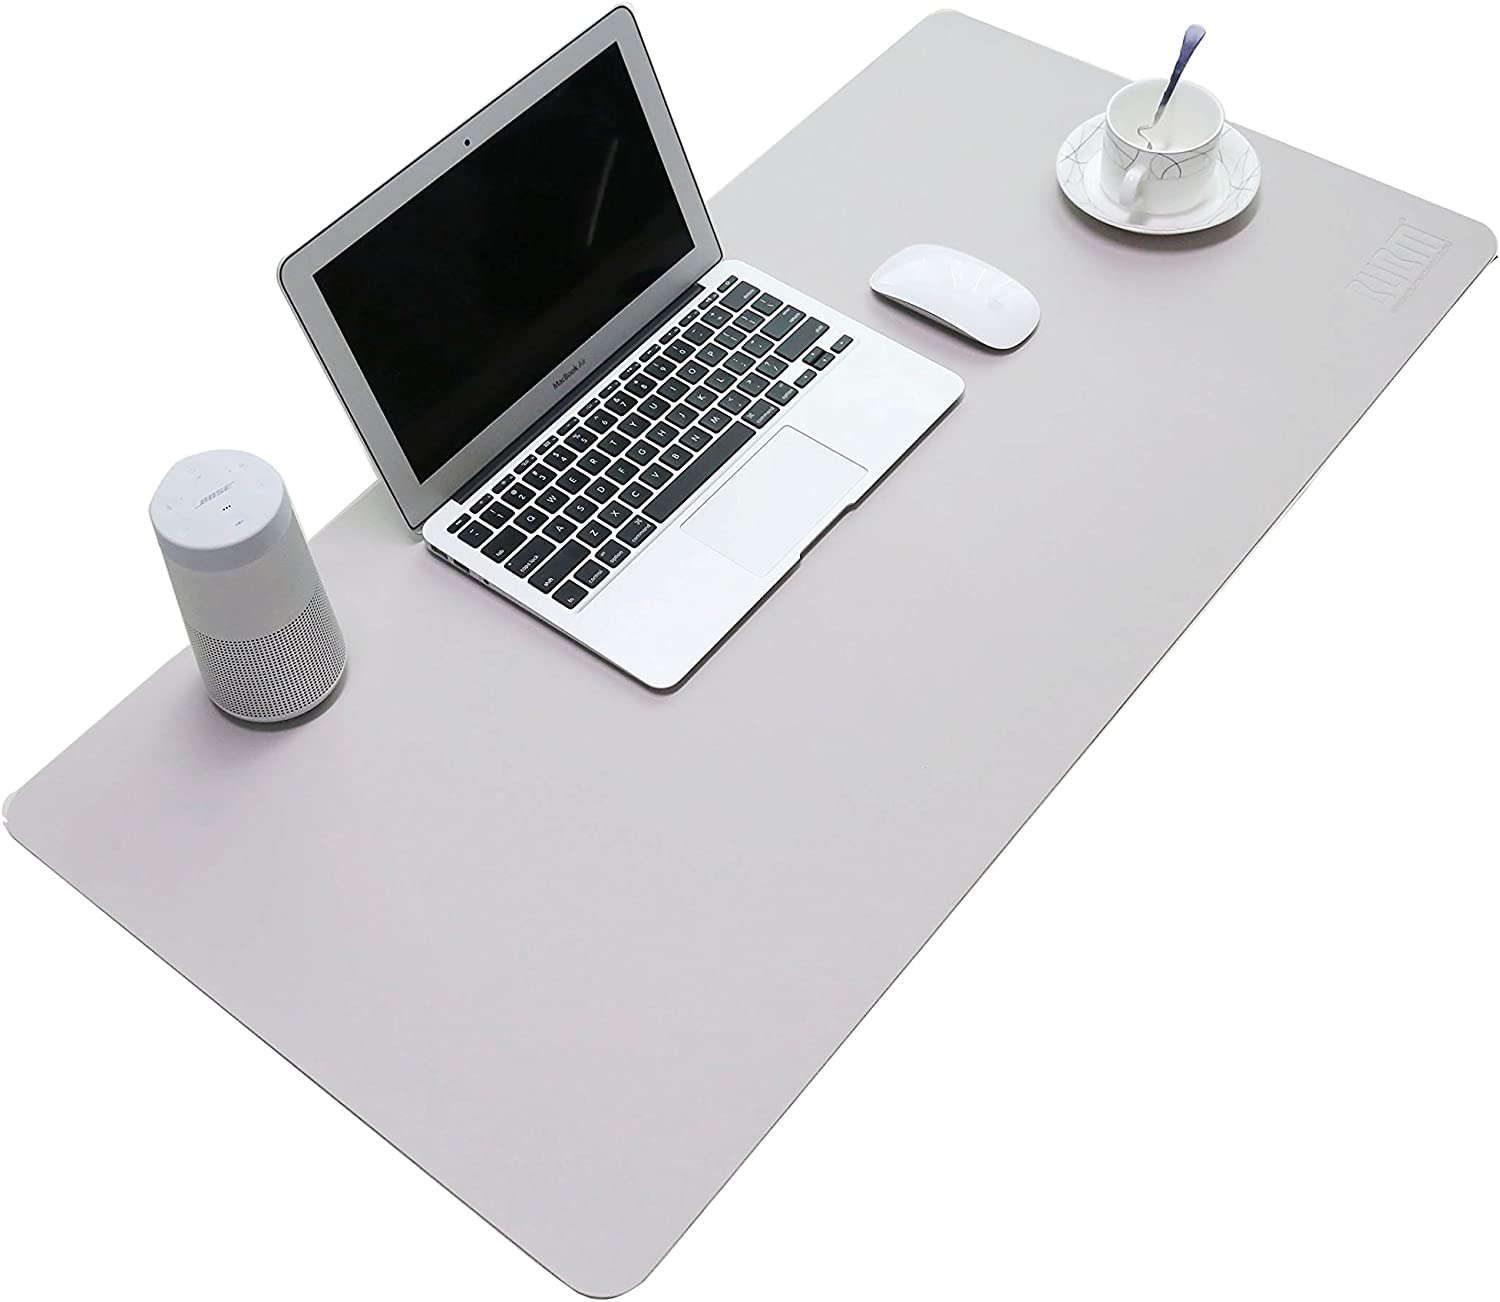 """BUBM PU Leather Mouse Pad Mat Waterproof, Perfect Desk Writing Mat for Office and Home,Ultra Thin 2mm - 31.5""""x15.8"""" (Gray)"""